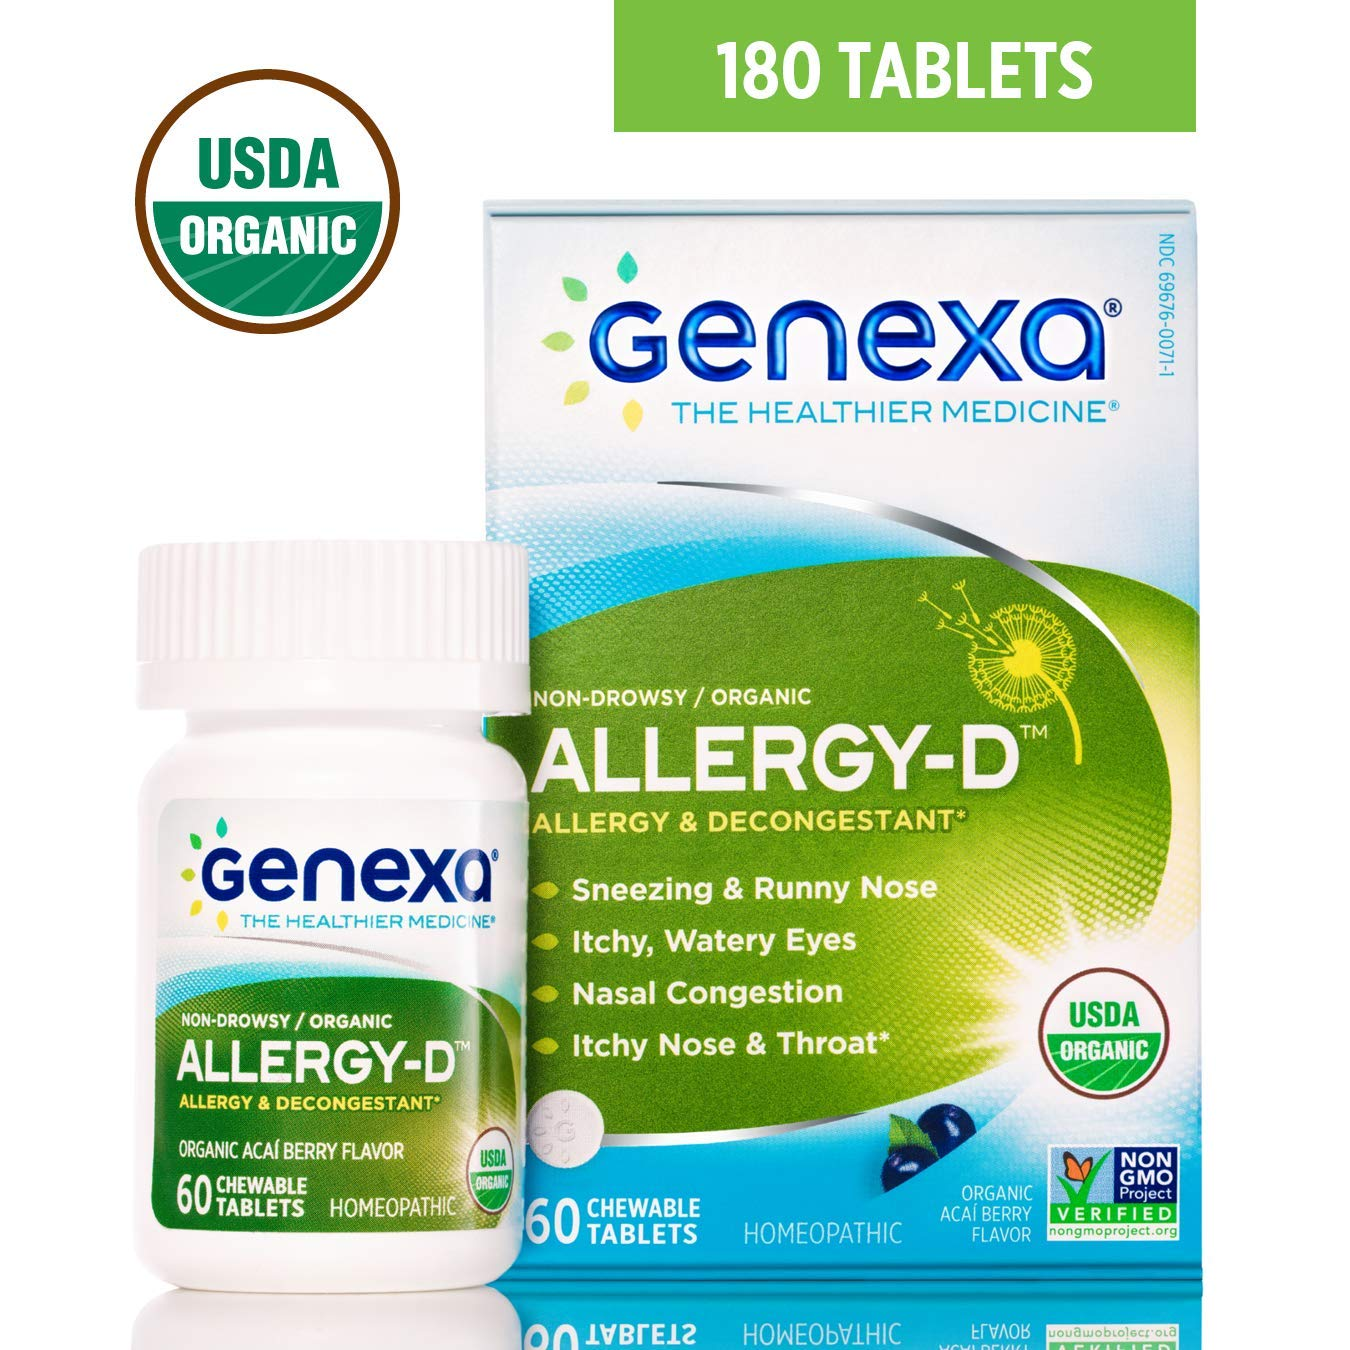 Genexa Allergy-D - 180 Tablets (3 Pack) | Certified Organic & Non-GMO, Physician Formulated, Homeopathic | Multi-Symptom Allergy Relief Medicine by Genexa